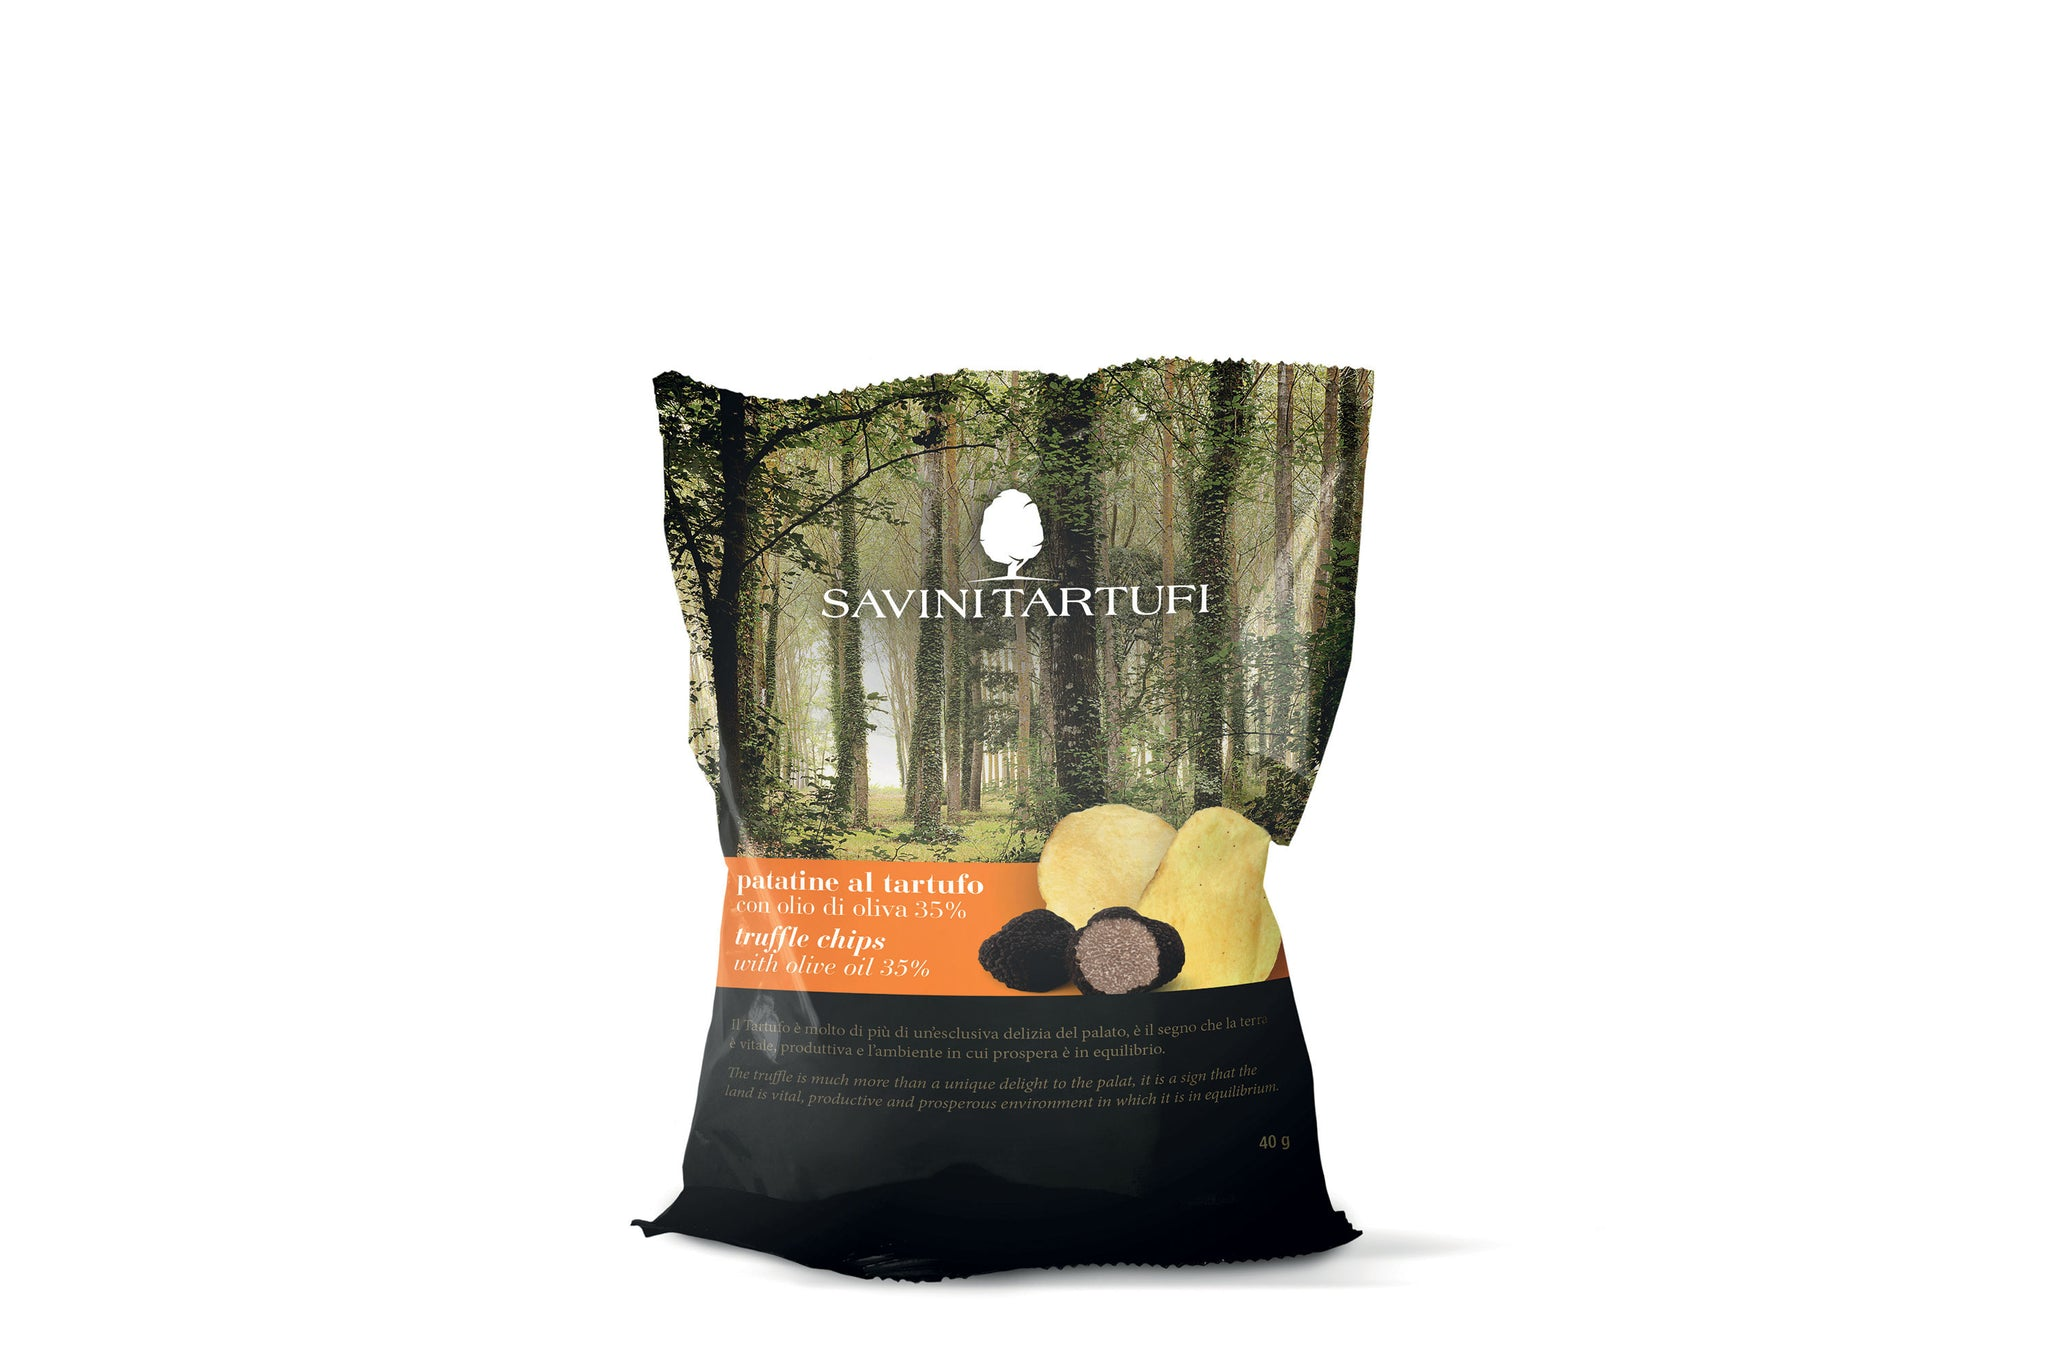 Savini Tartufi Truffle Chips 40g | Shop Italian Food